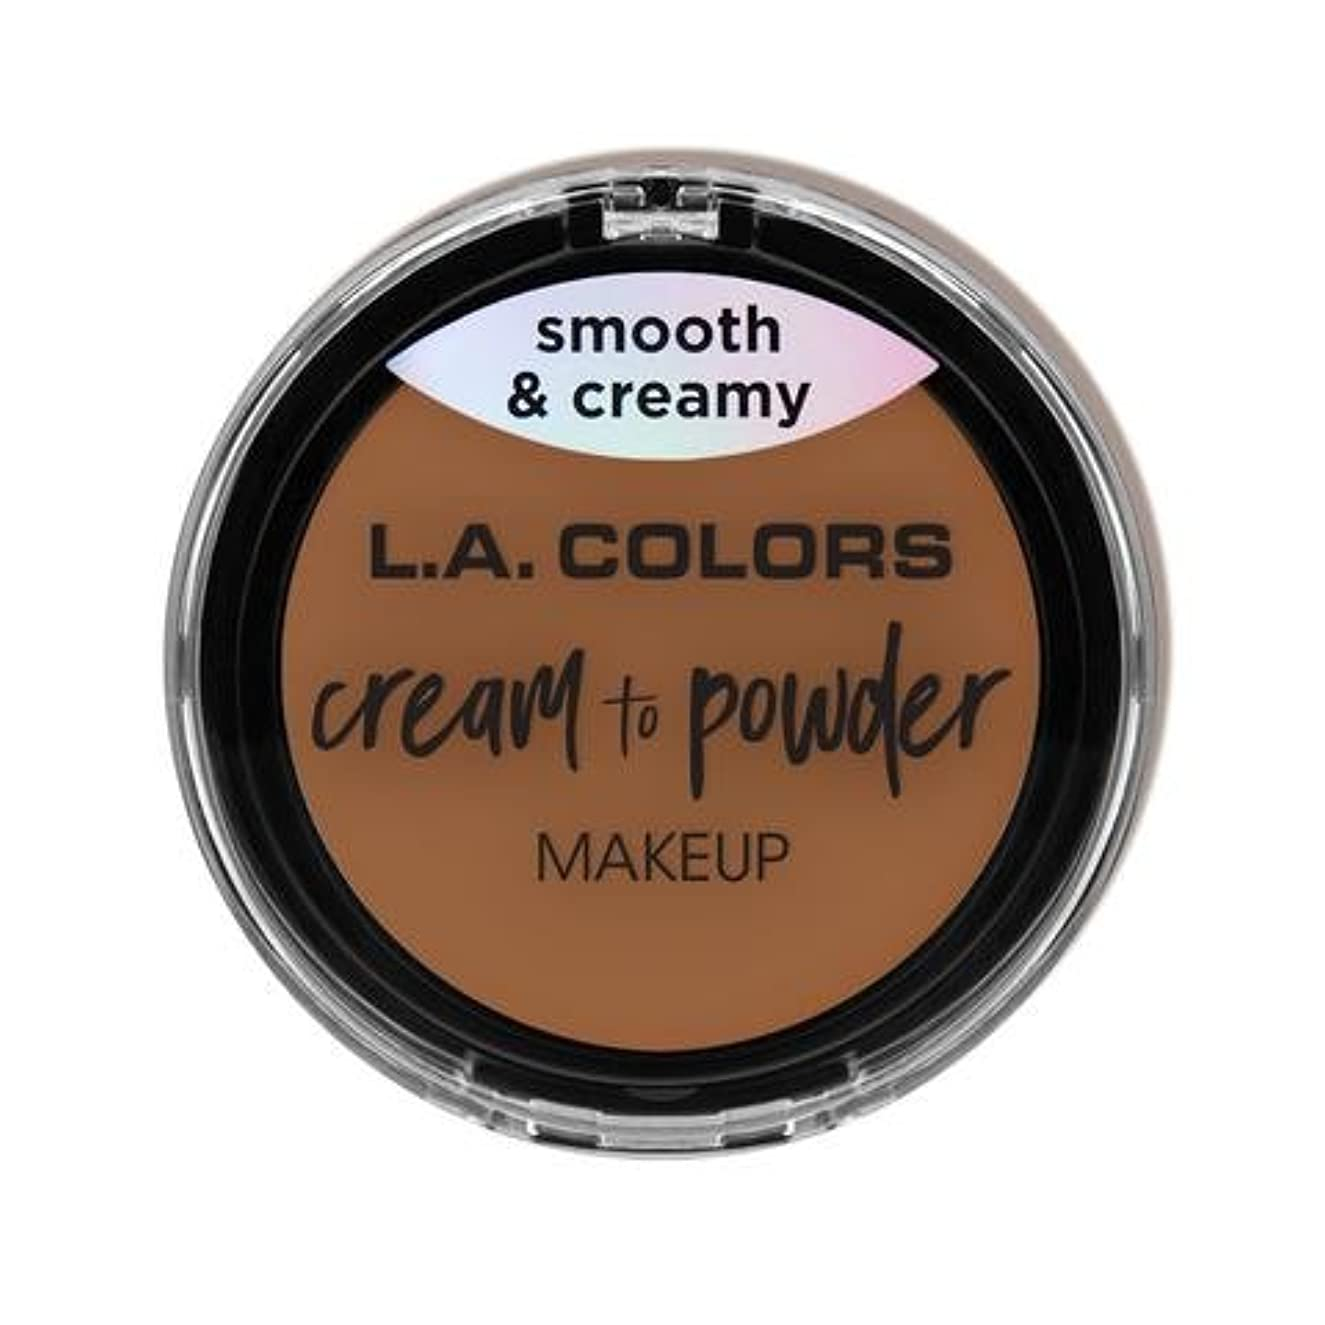 取得する相続人第二に(3 Pack) L.A. COLORS Cream To Powder Foundation - Sand (並行輸入品)